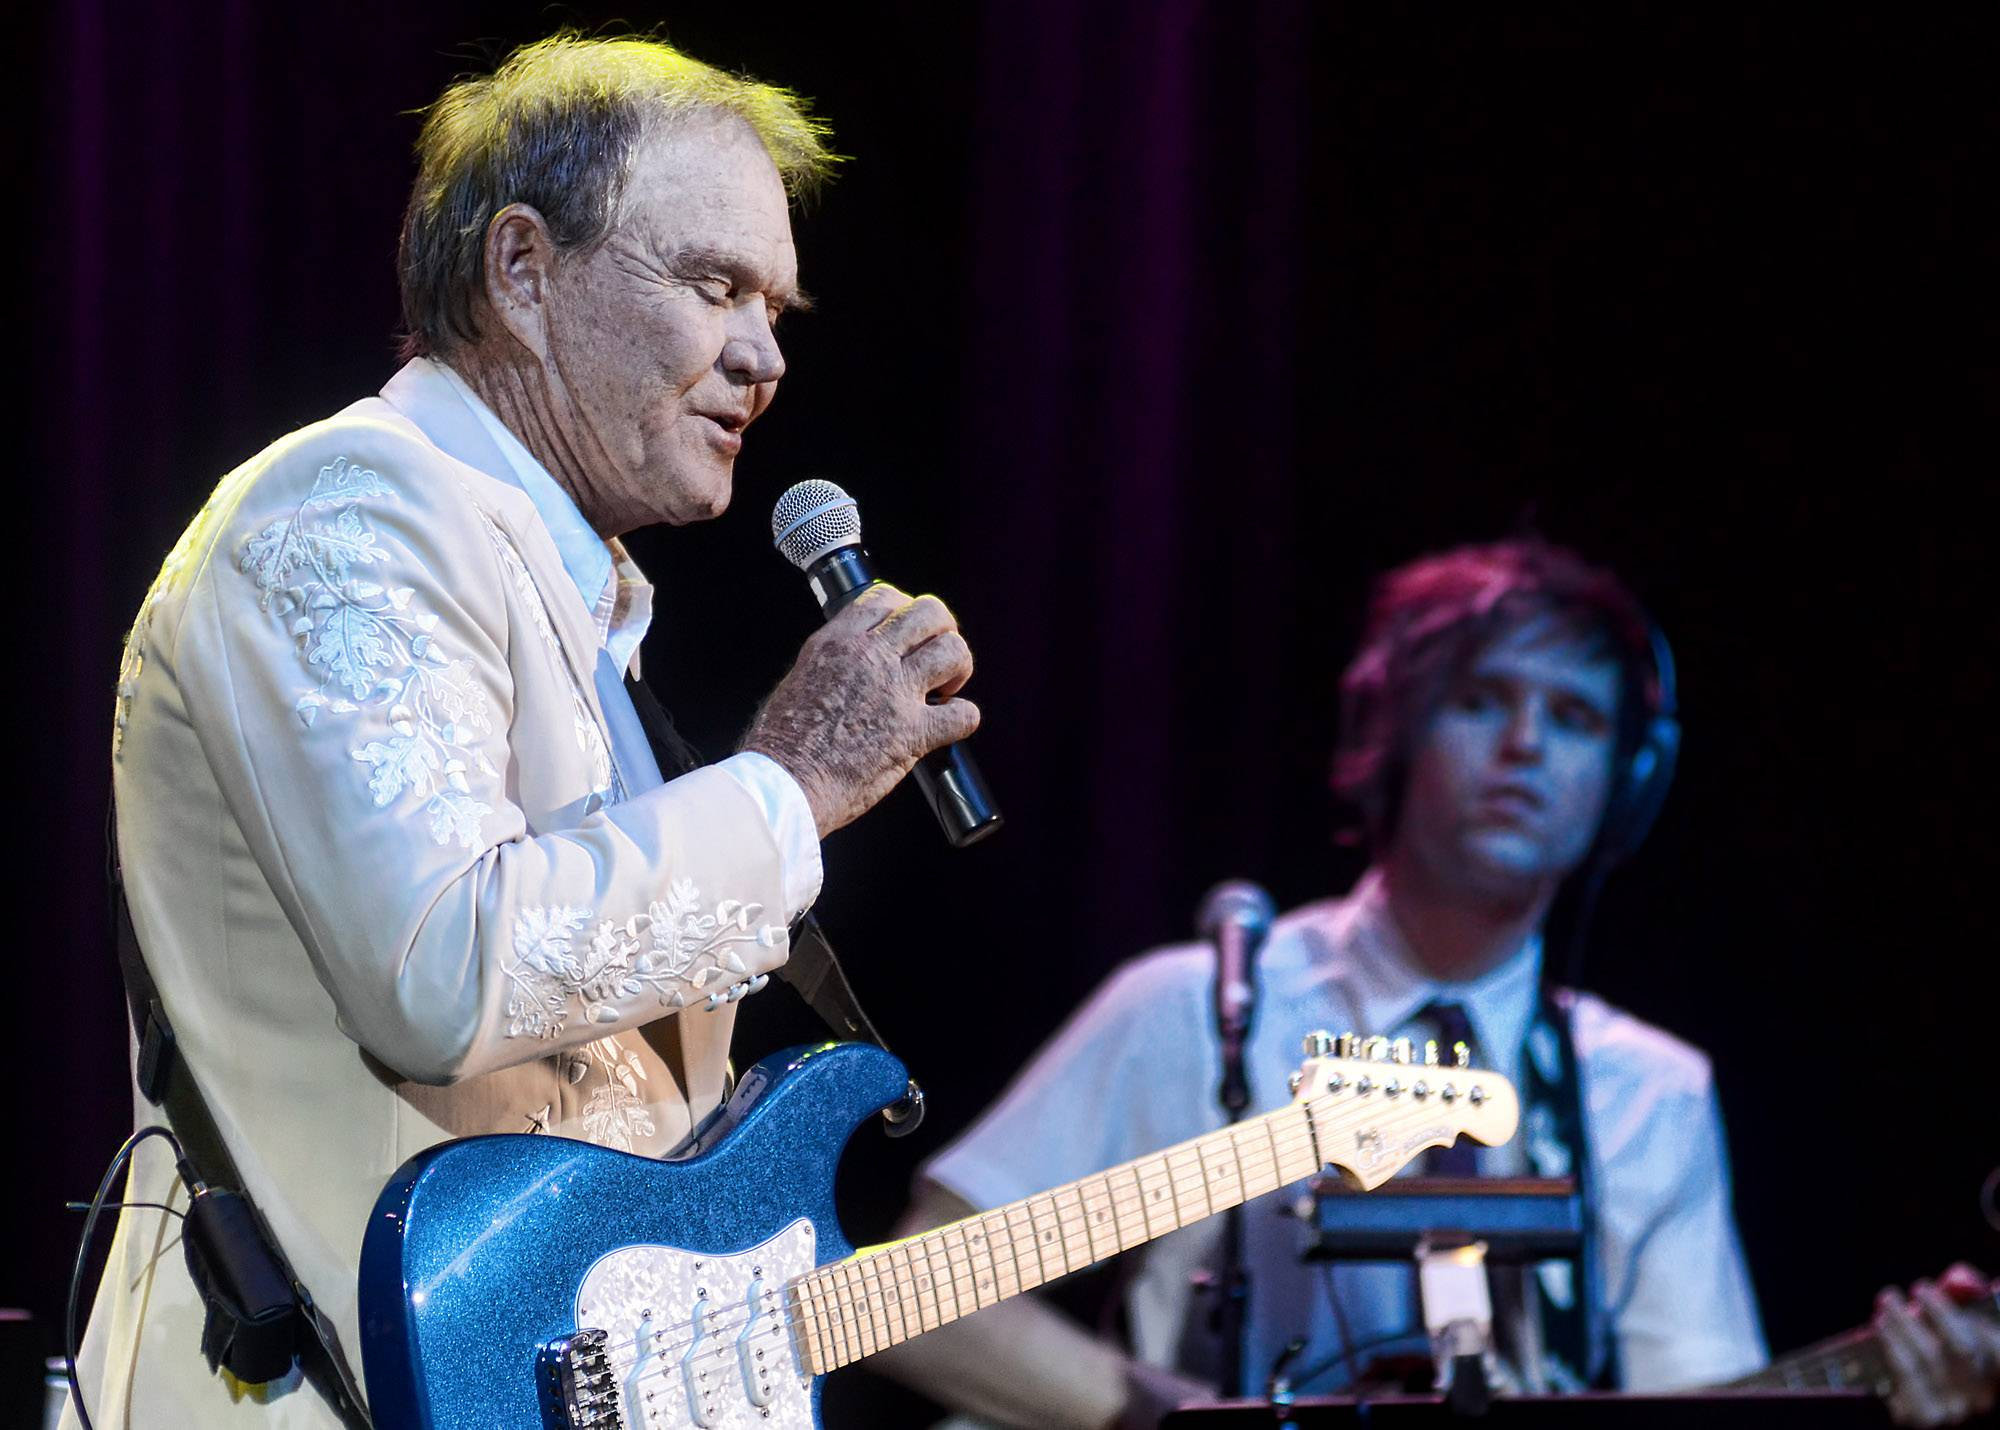 Glen Campbell's first performance since announcing he has Alzheimer's was largely a triumph. He performed Friday with his band, which includes many family members.